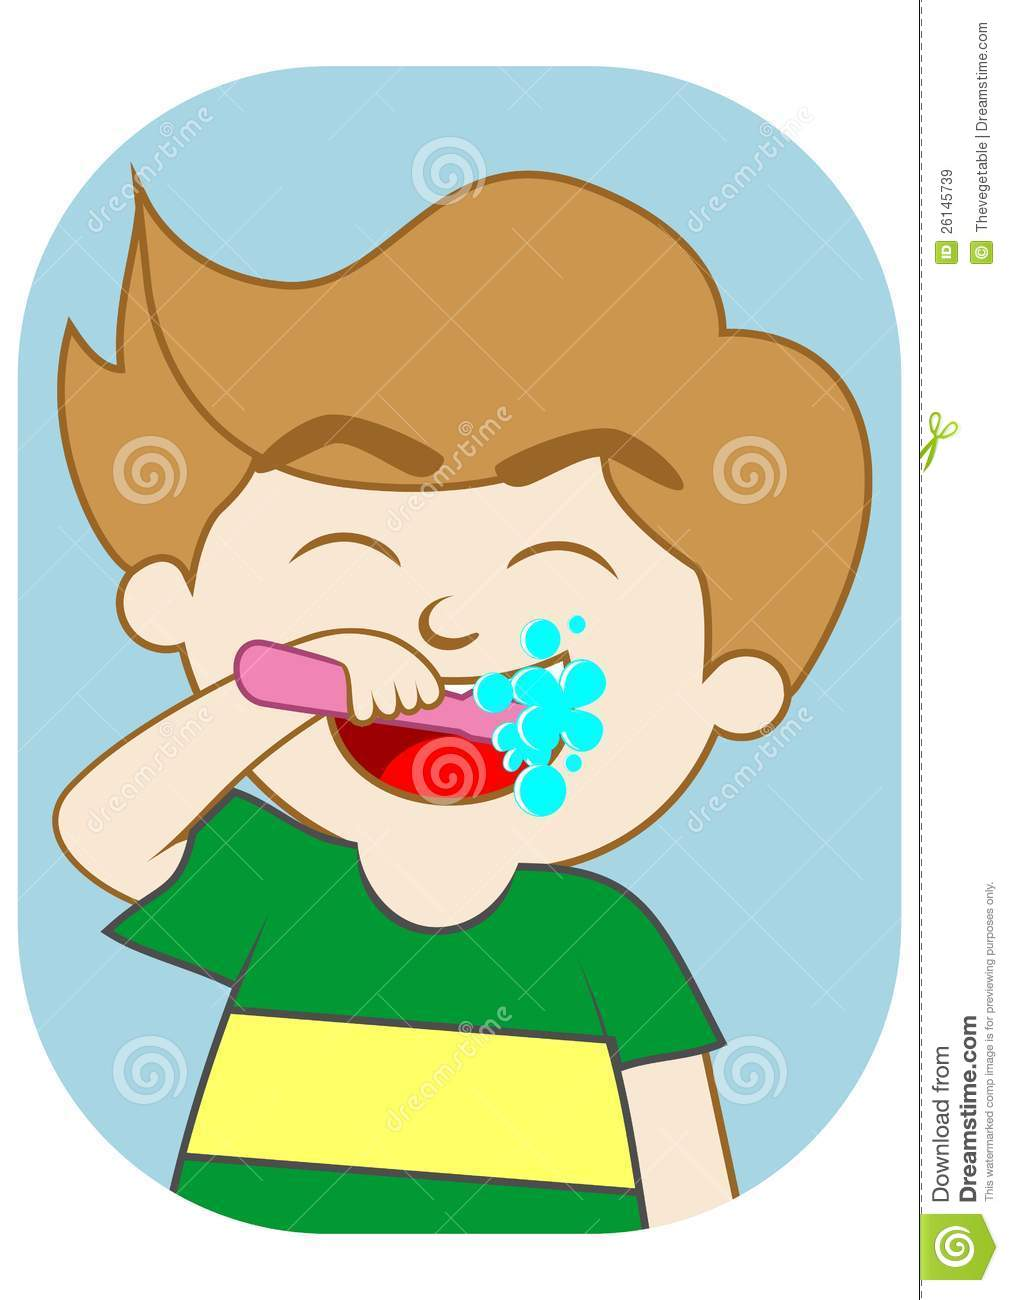 Brush Your Teeth Clipart - Clipart Kid